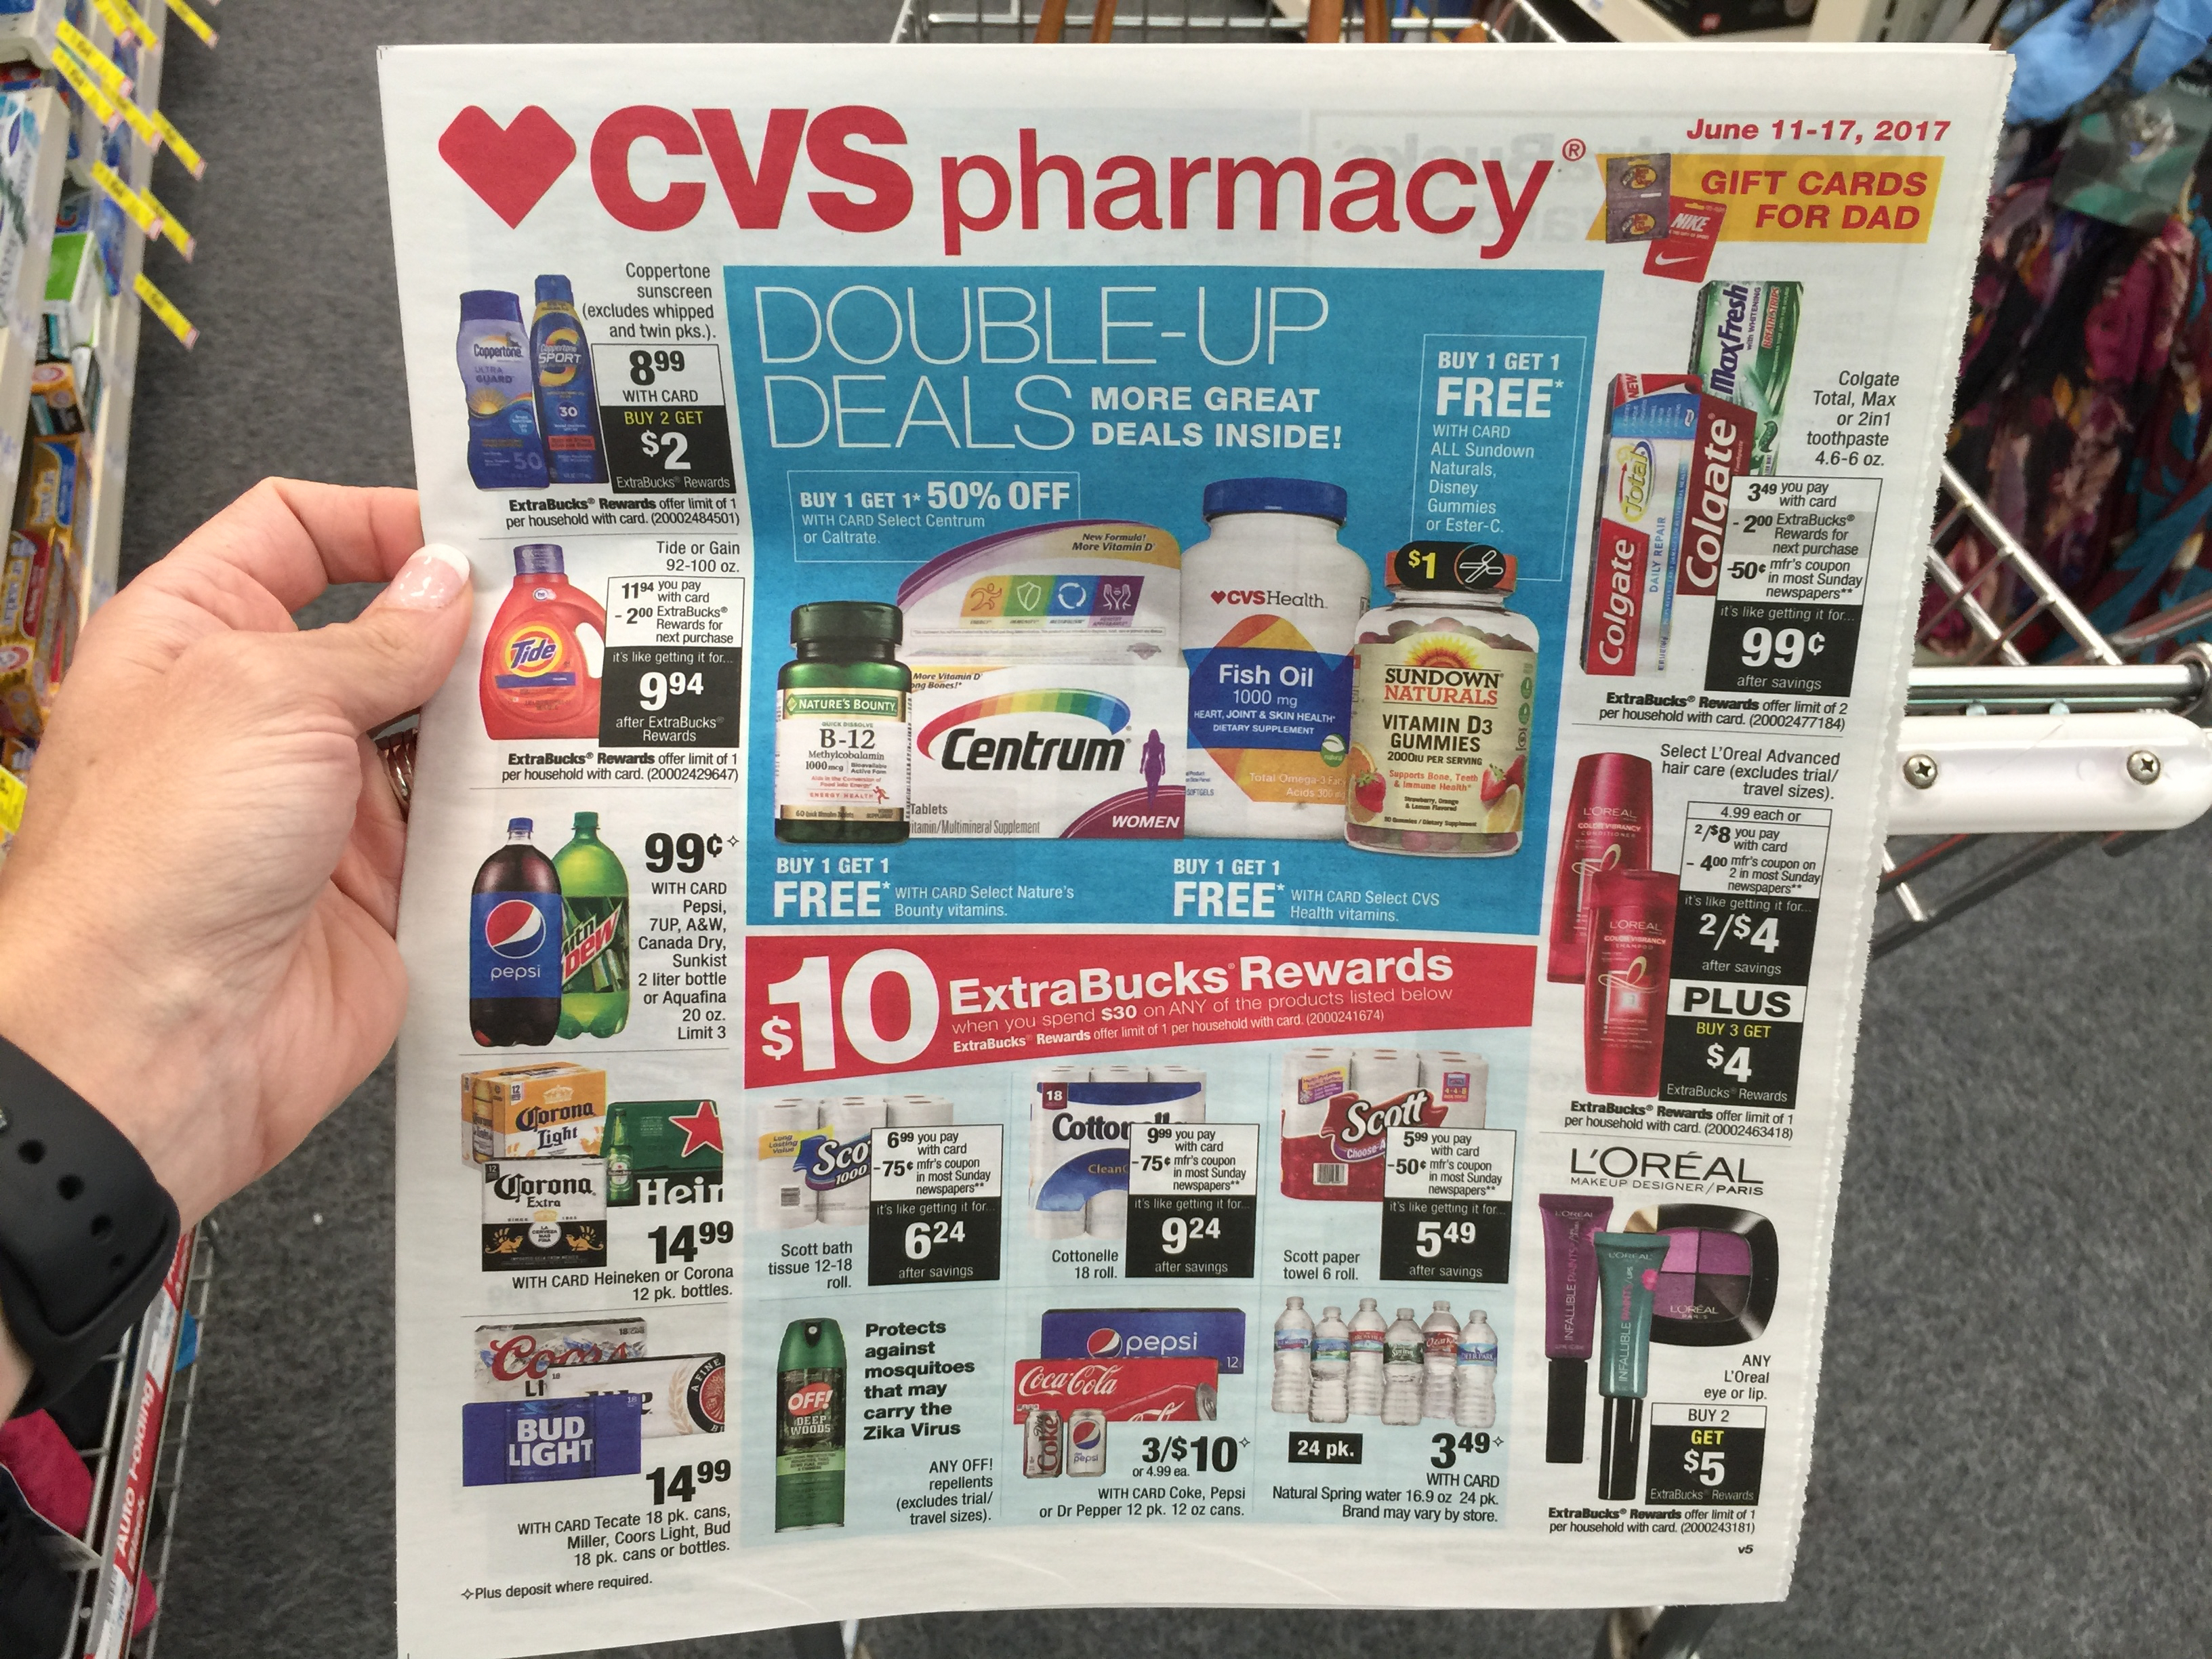 23 money saving tips you may not know about shopping at cvspharmacy – weekly ad